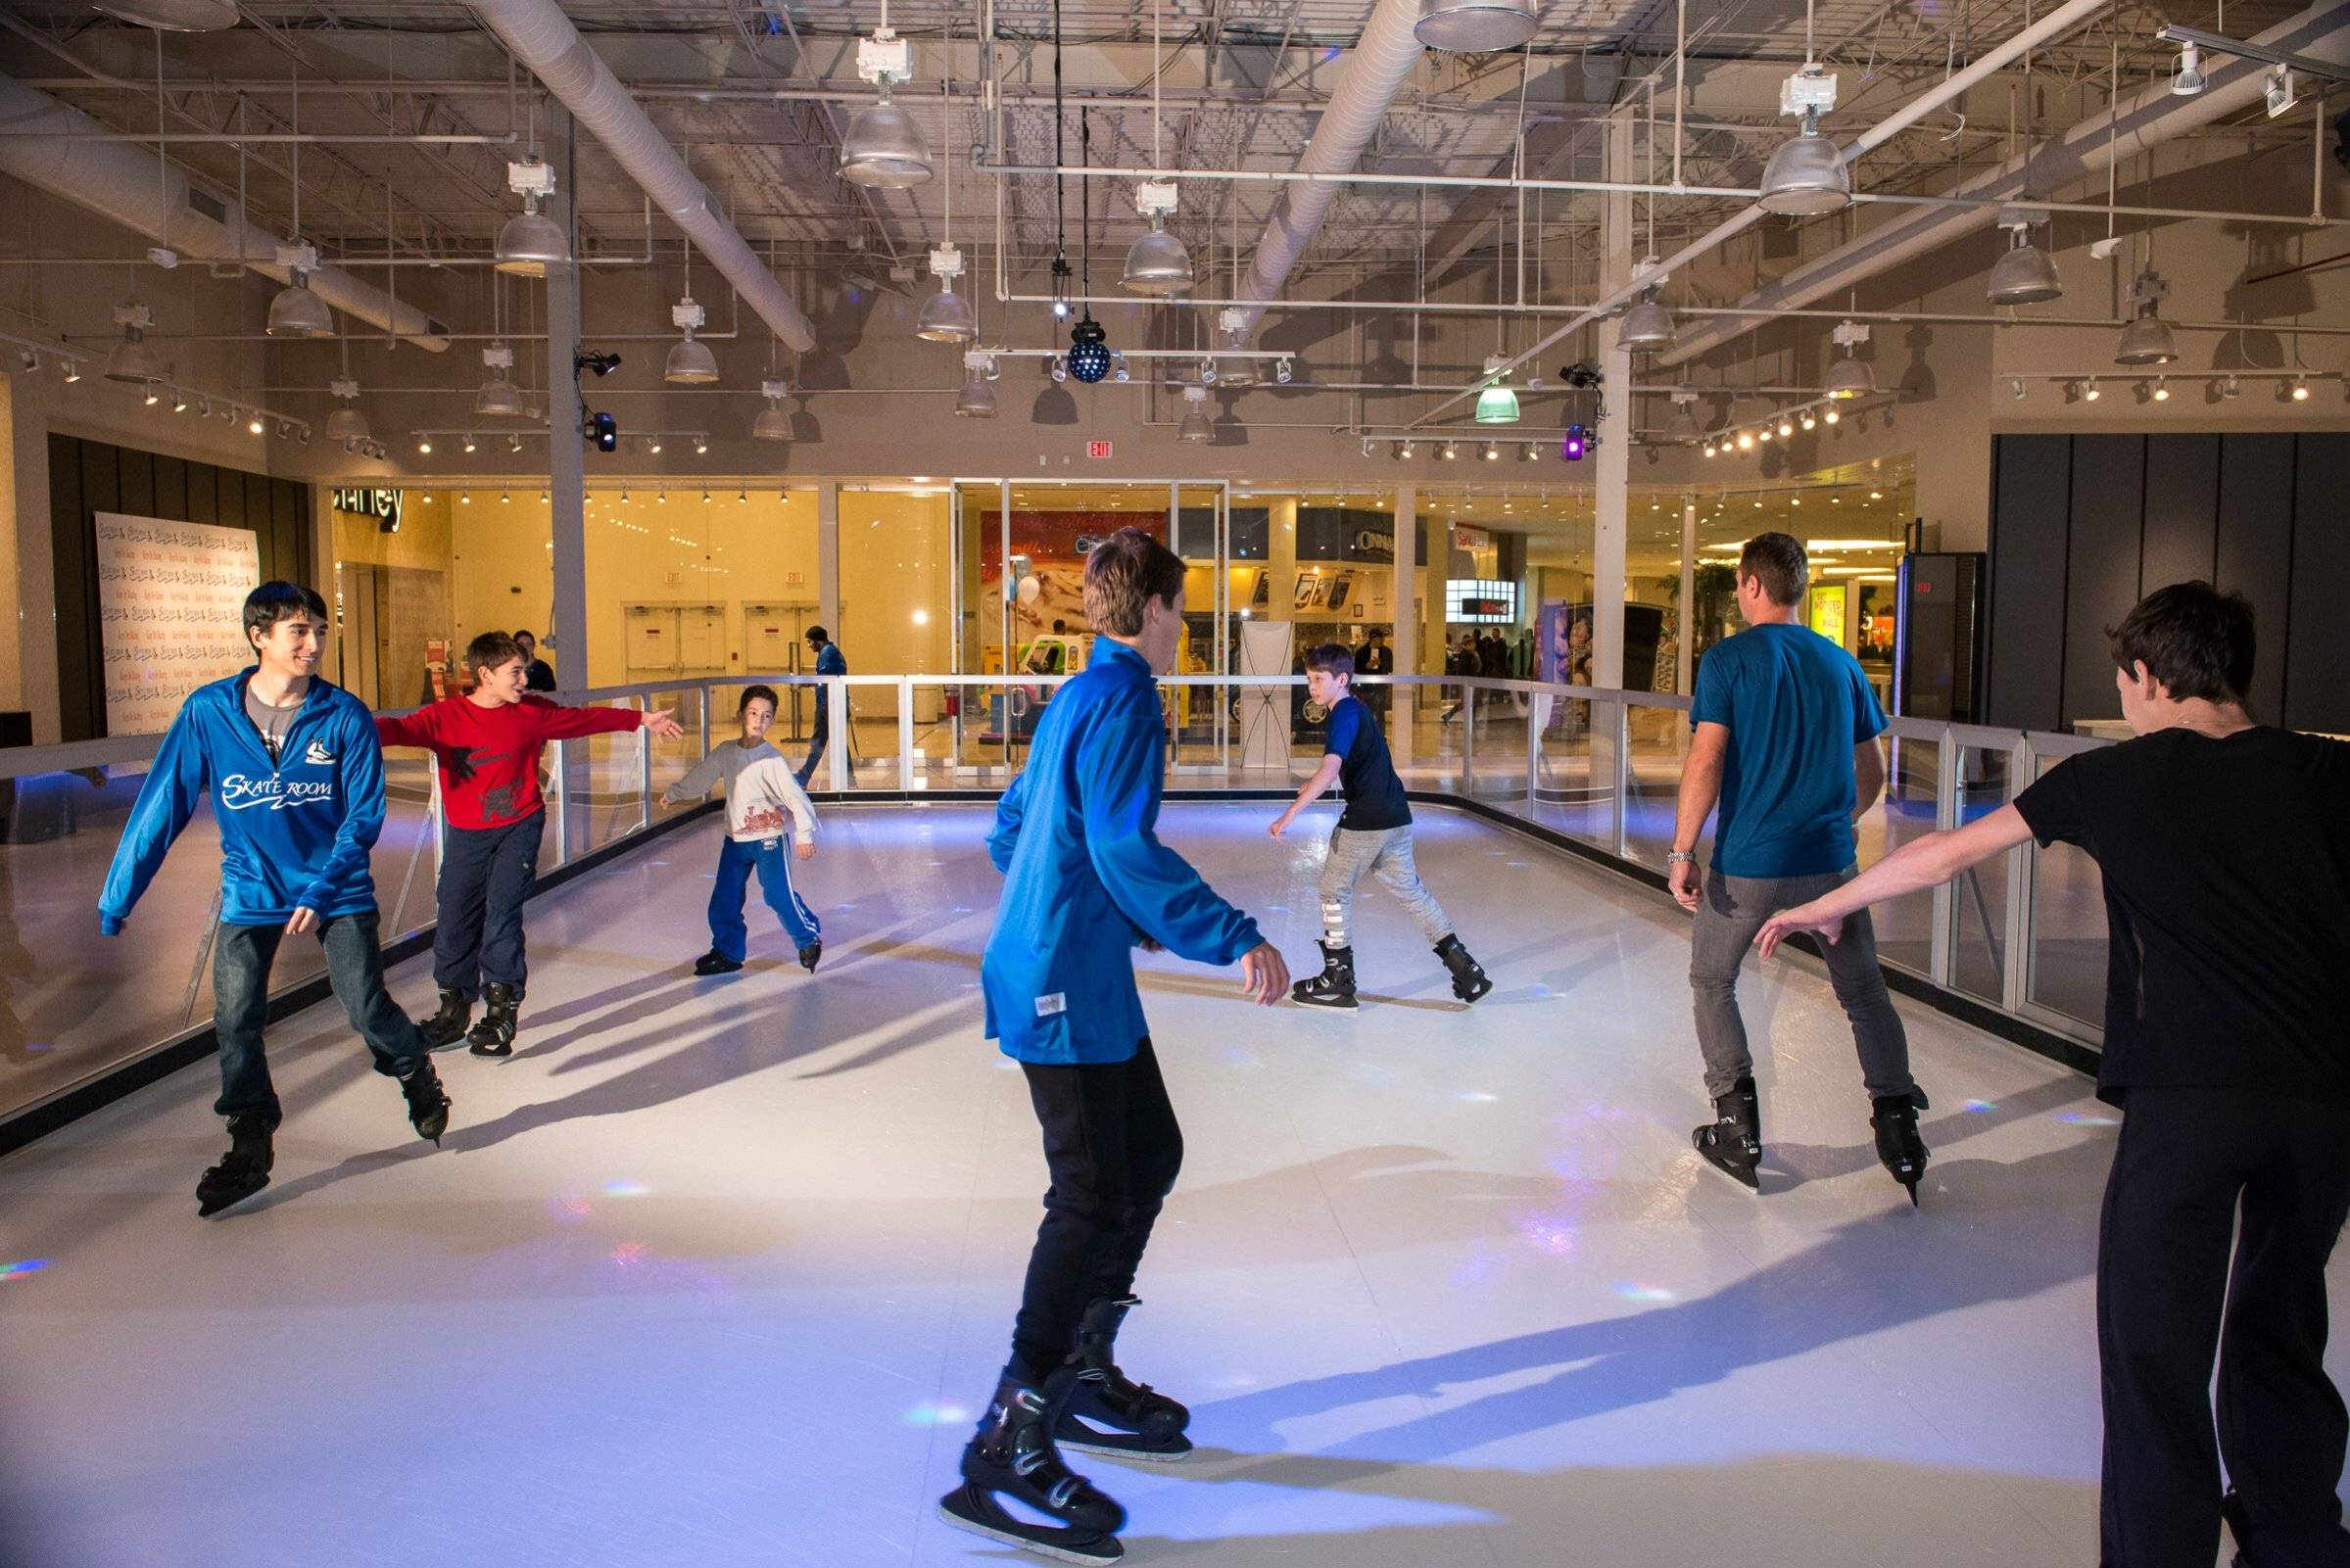 Skaters at the new Skate Room ice skating rink in Hawthorn Mall enjoy open skating, private and group lessons, and celebrating birthday parties and other occasions and special events. Skate Room